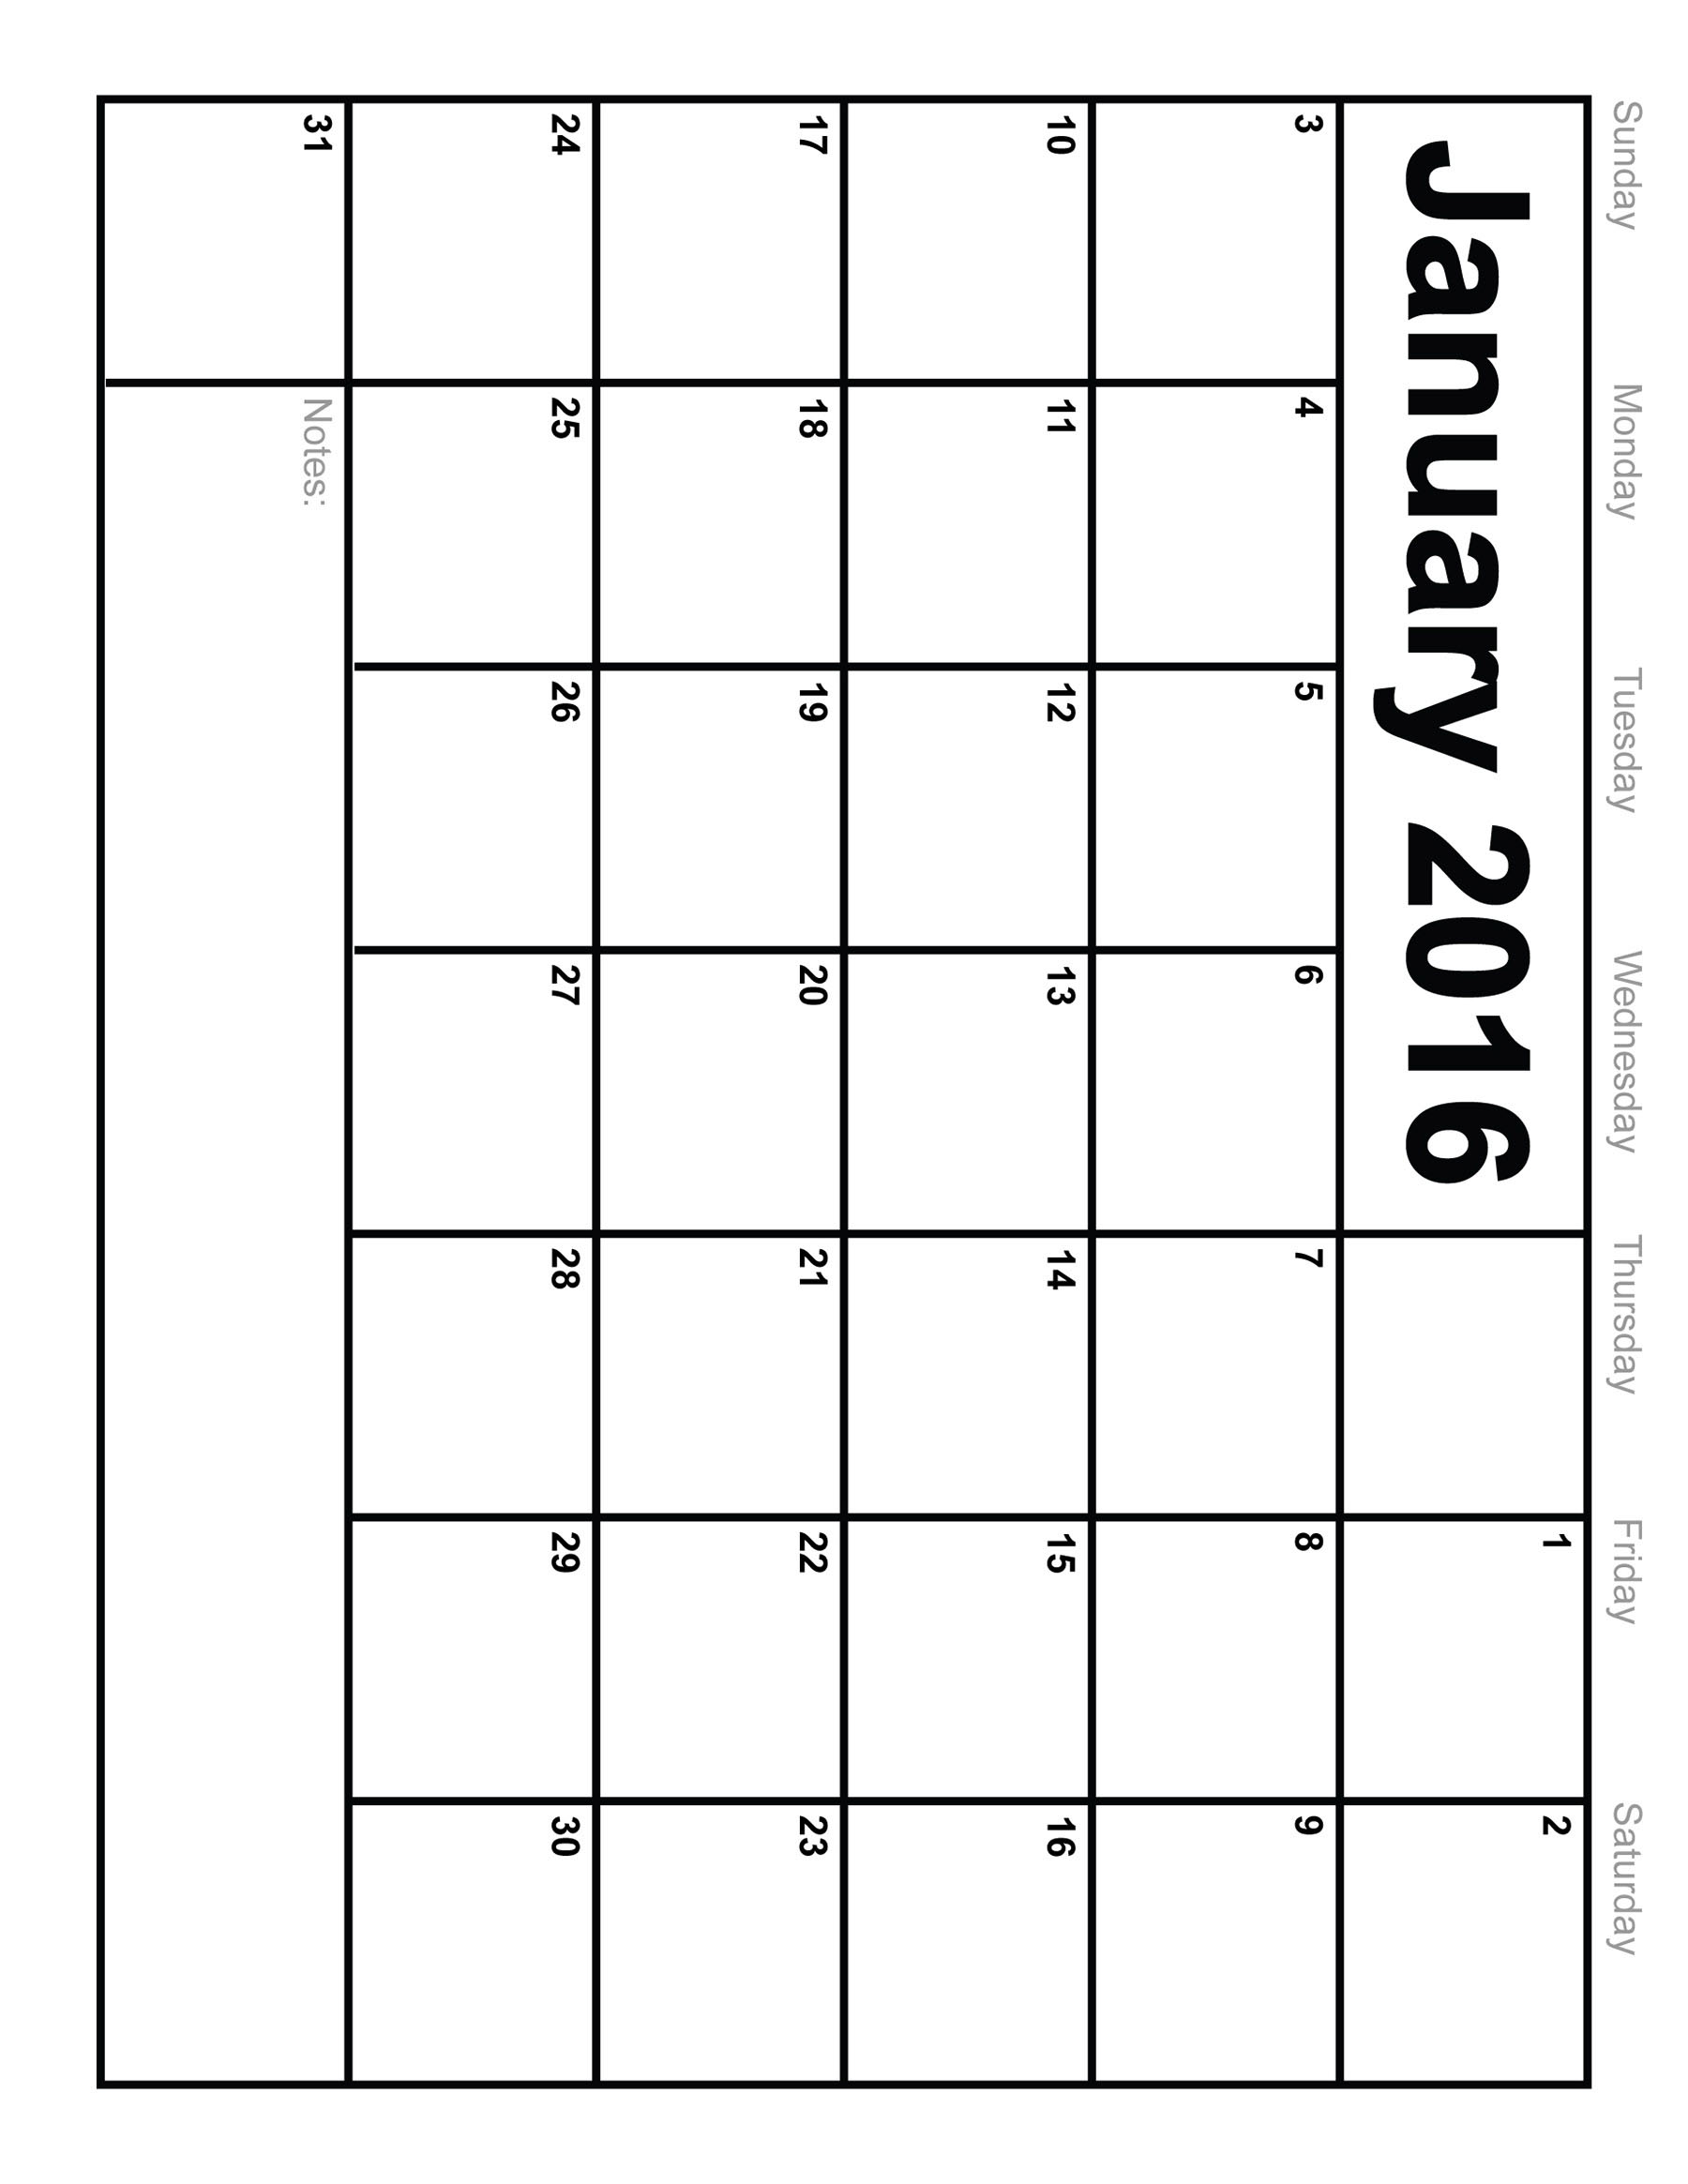 8 Images of Blank Printable 2016 Calendar